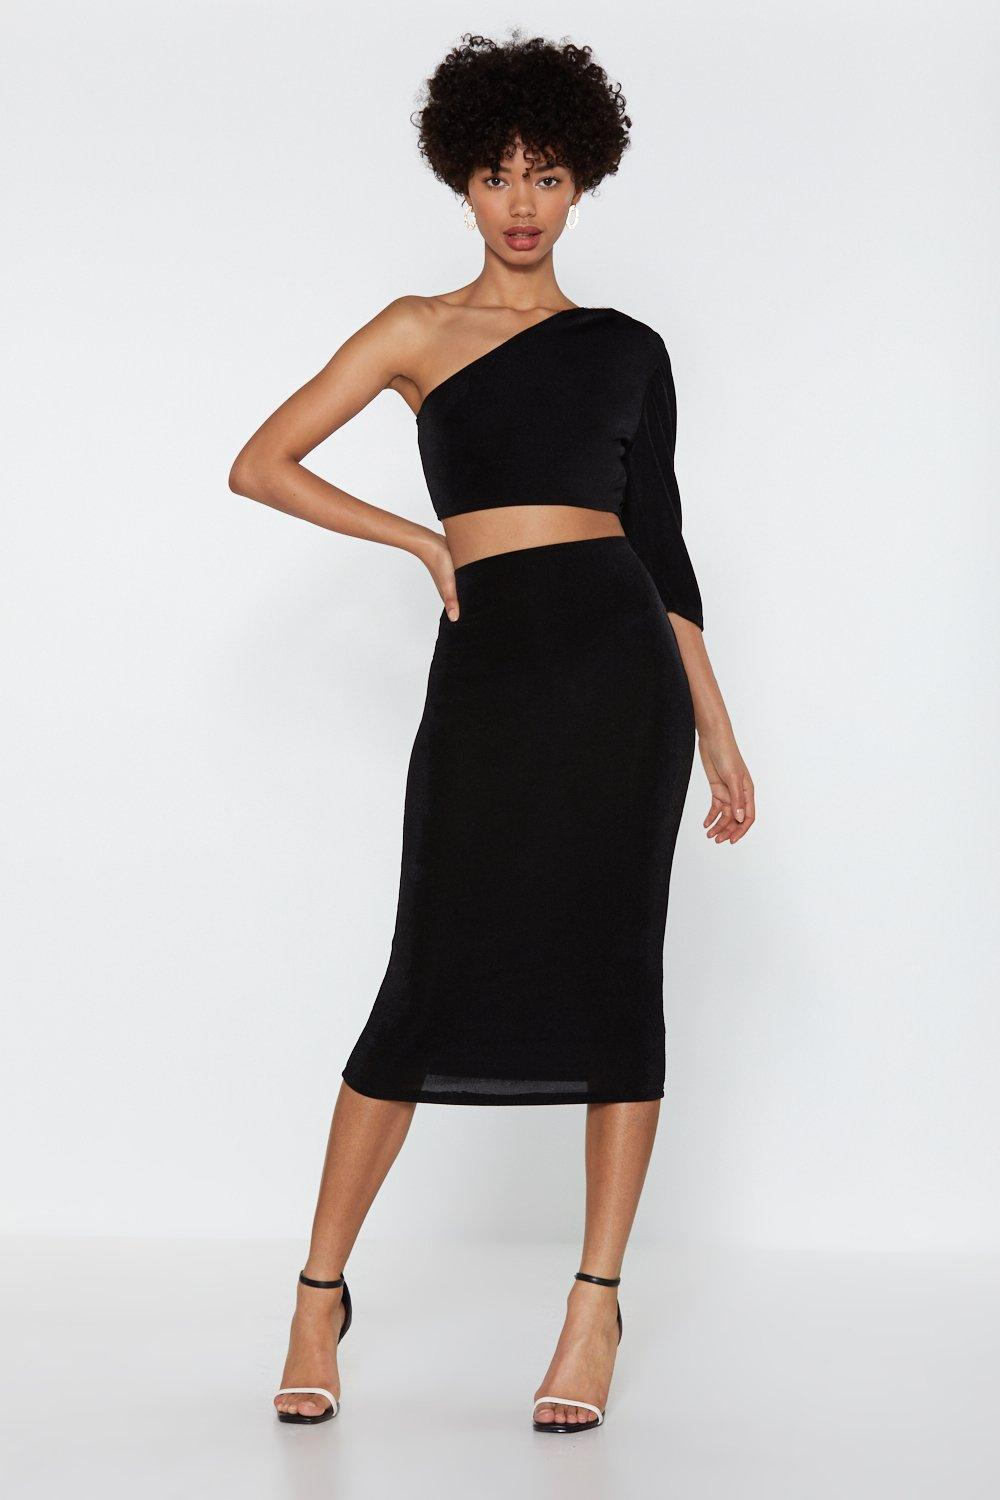 311f86d89533a1 Team Up One Shoulder Crop Top and Skirt Set | Shop Clothes at Nasty Gal!